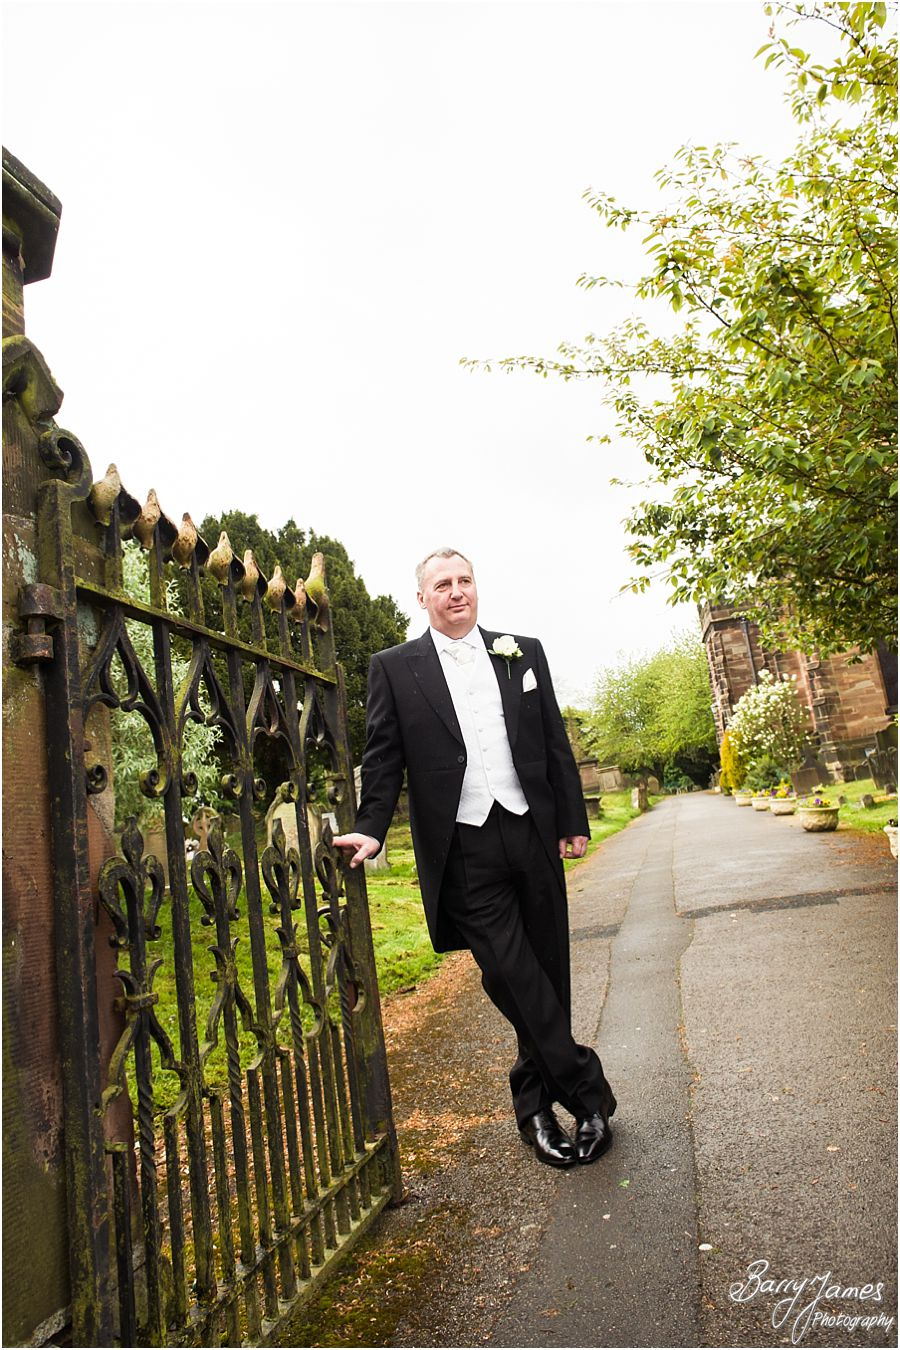 Unobtrusive, relaxed wedding photographs at St Michaels Church in Penkridge that tell the beautiful wedding story by Stafford Wedding Photographer Barry James